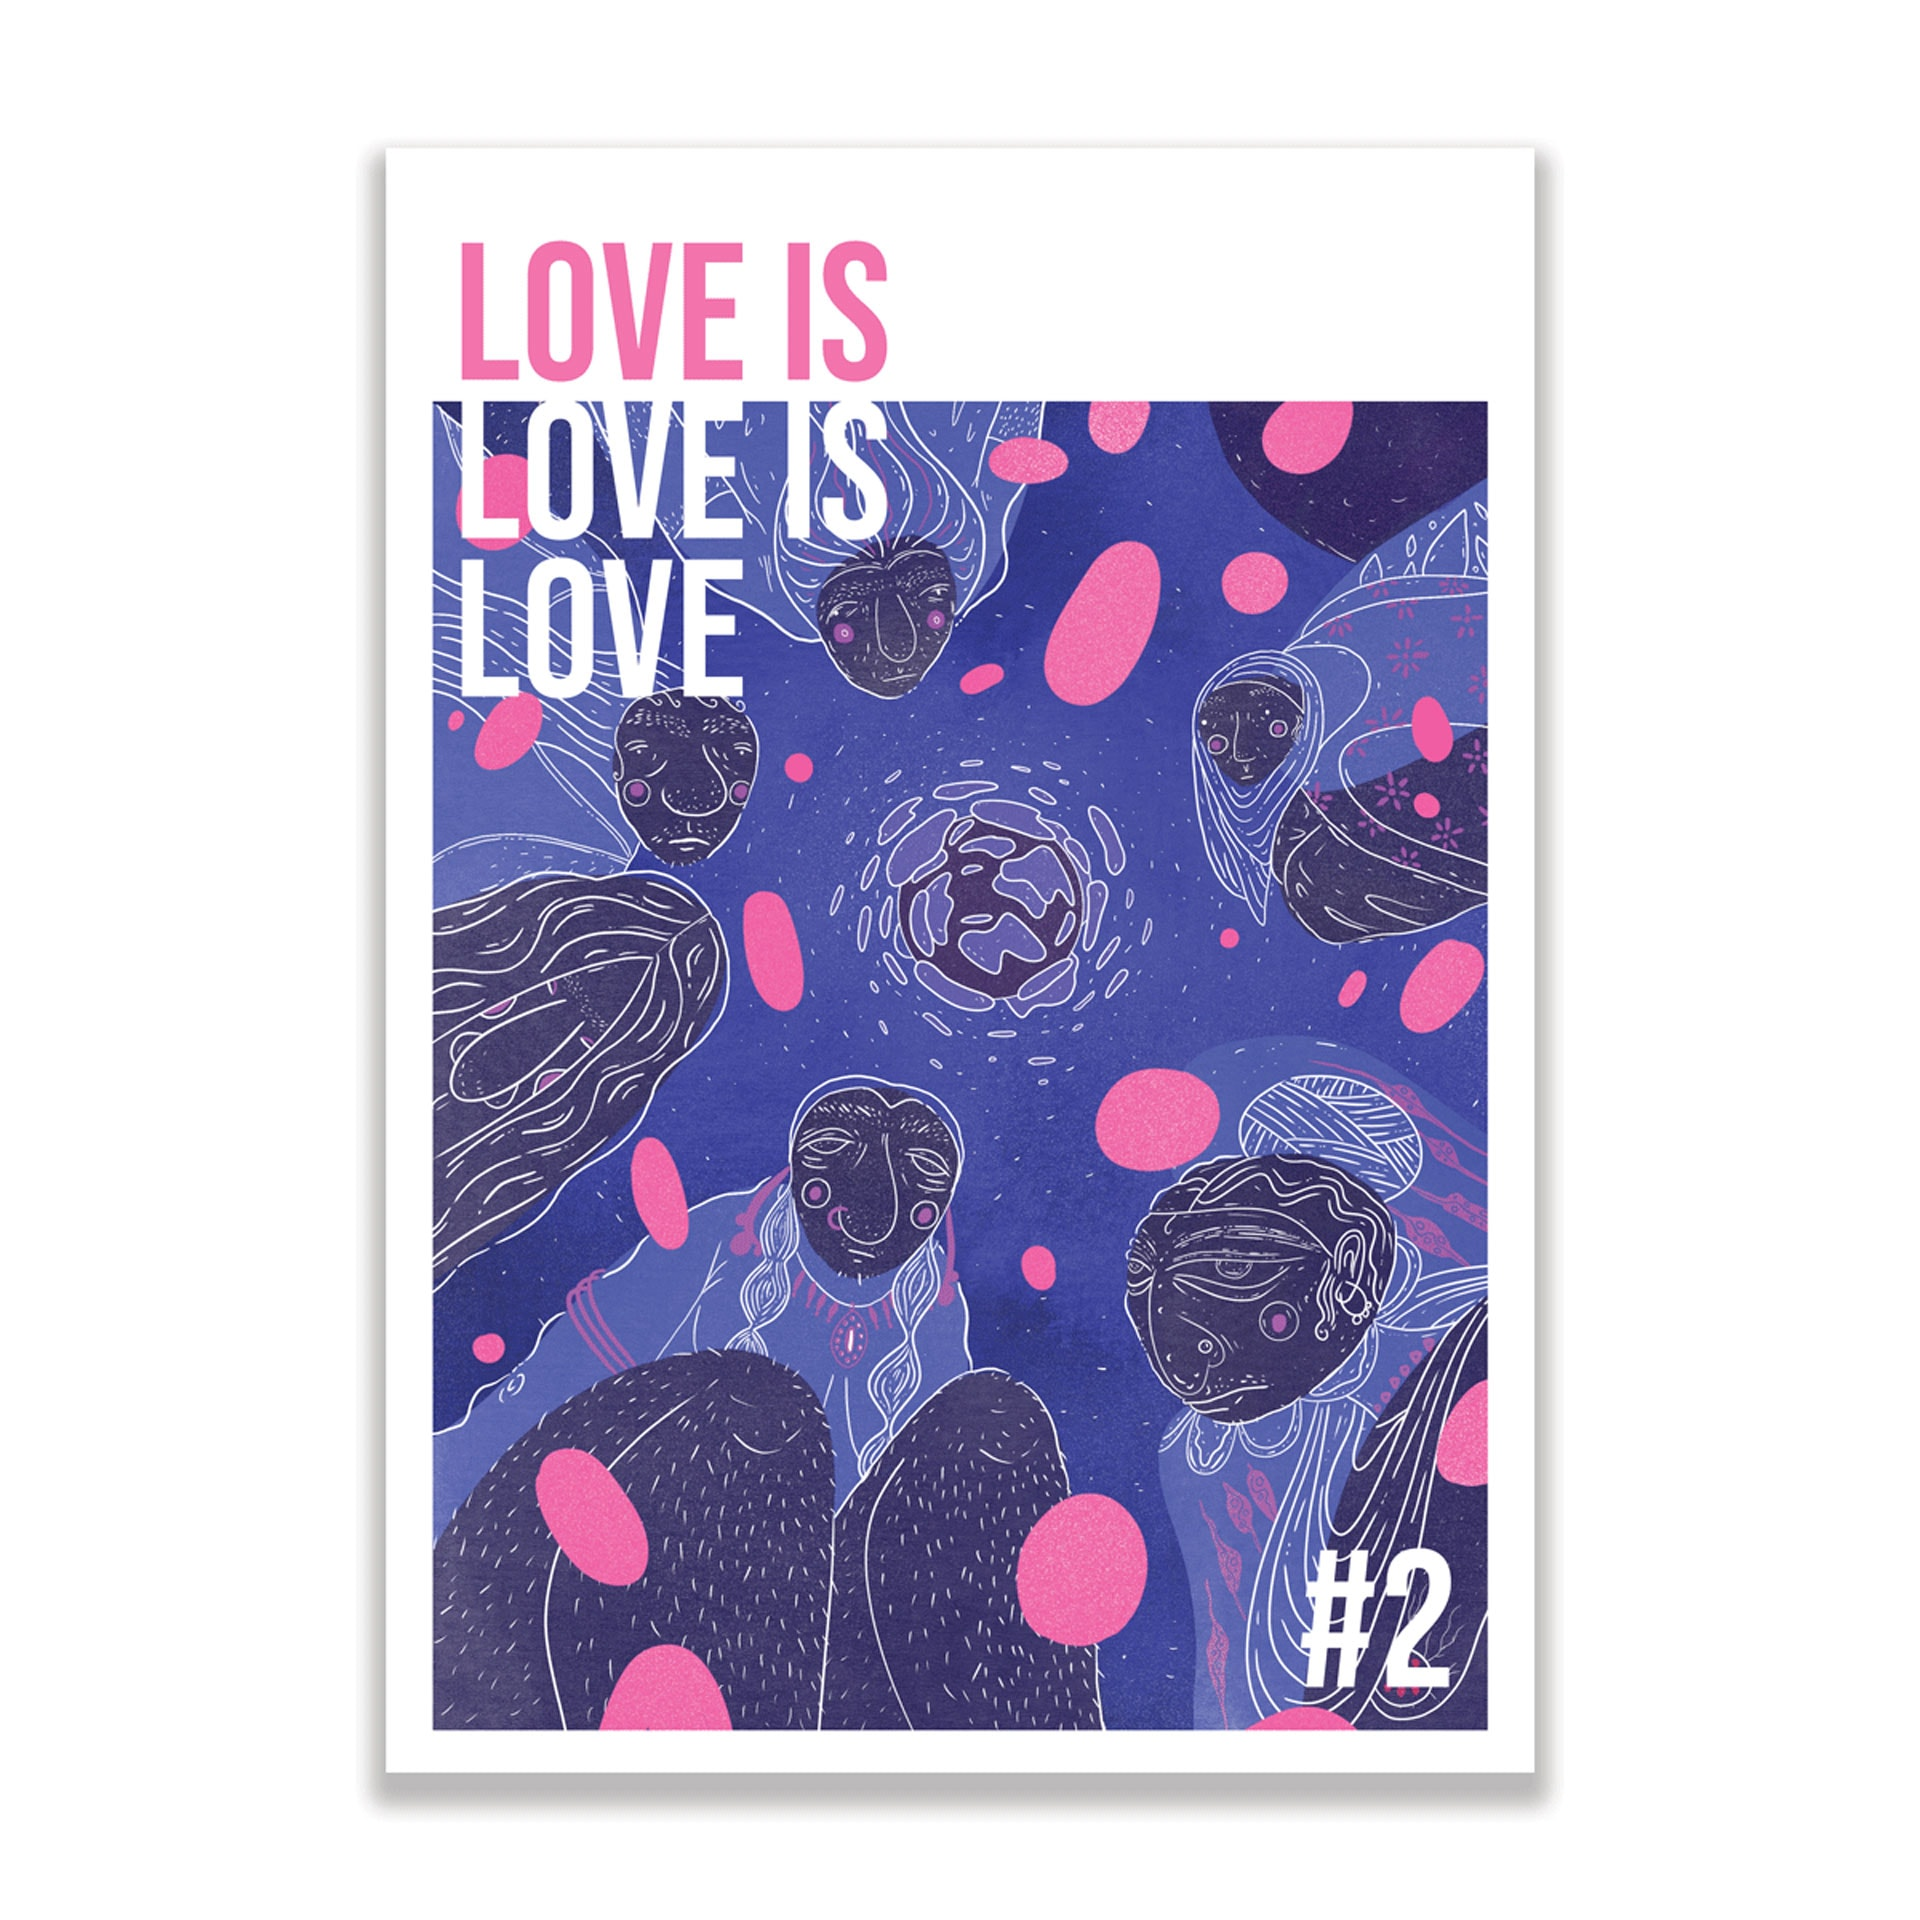 The second issue of bi art anthology Love is love is love featuring cover art by Isma Gul Hasan.